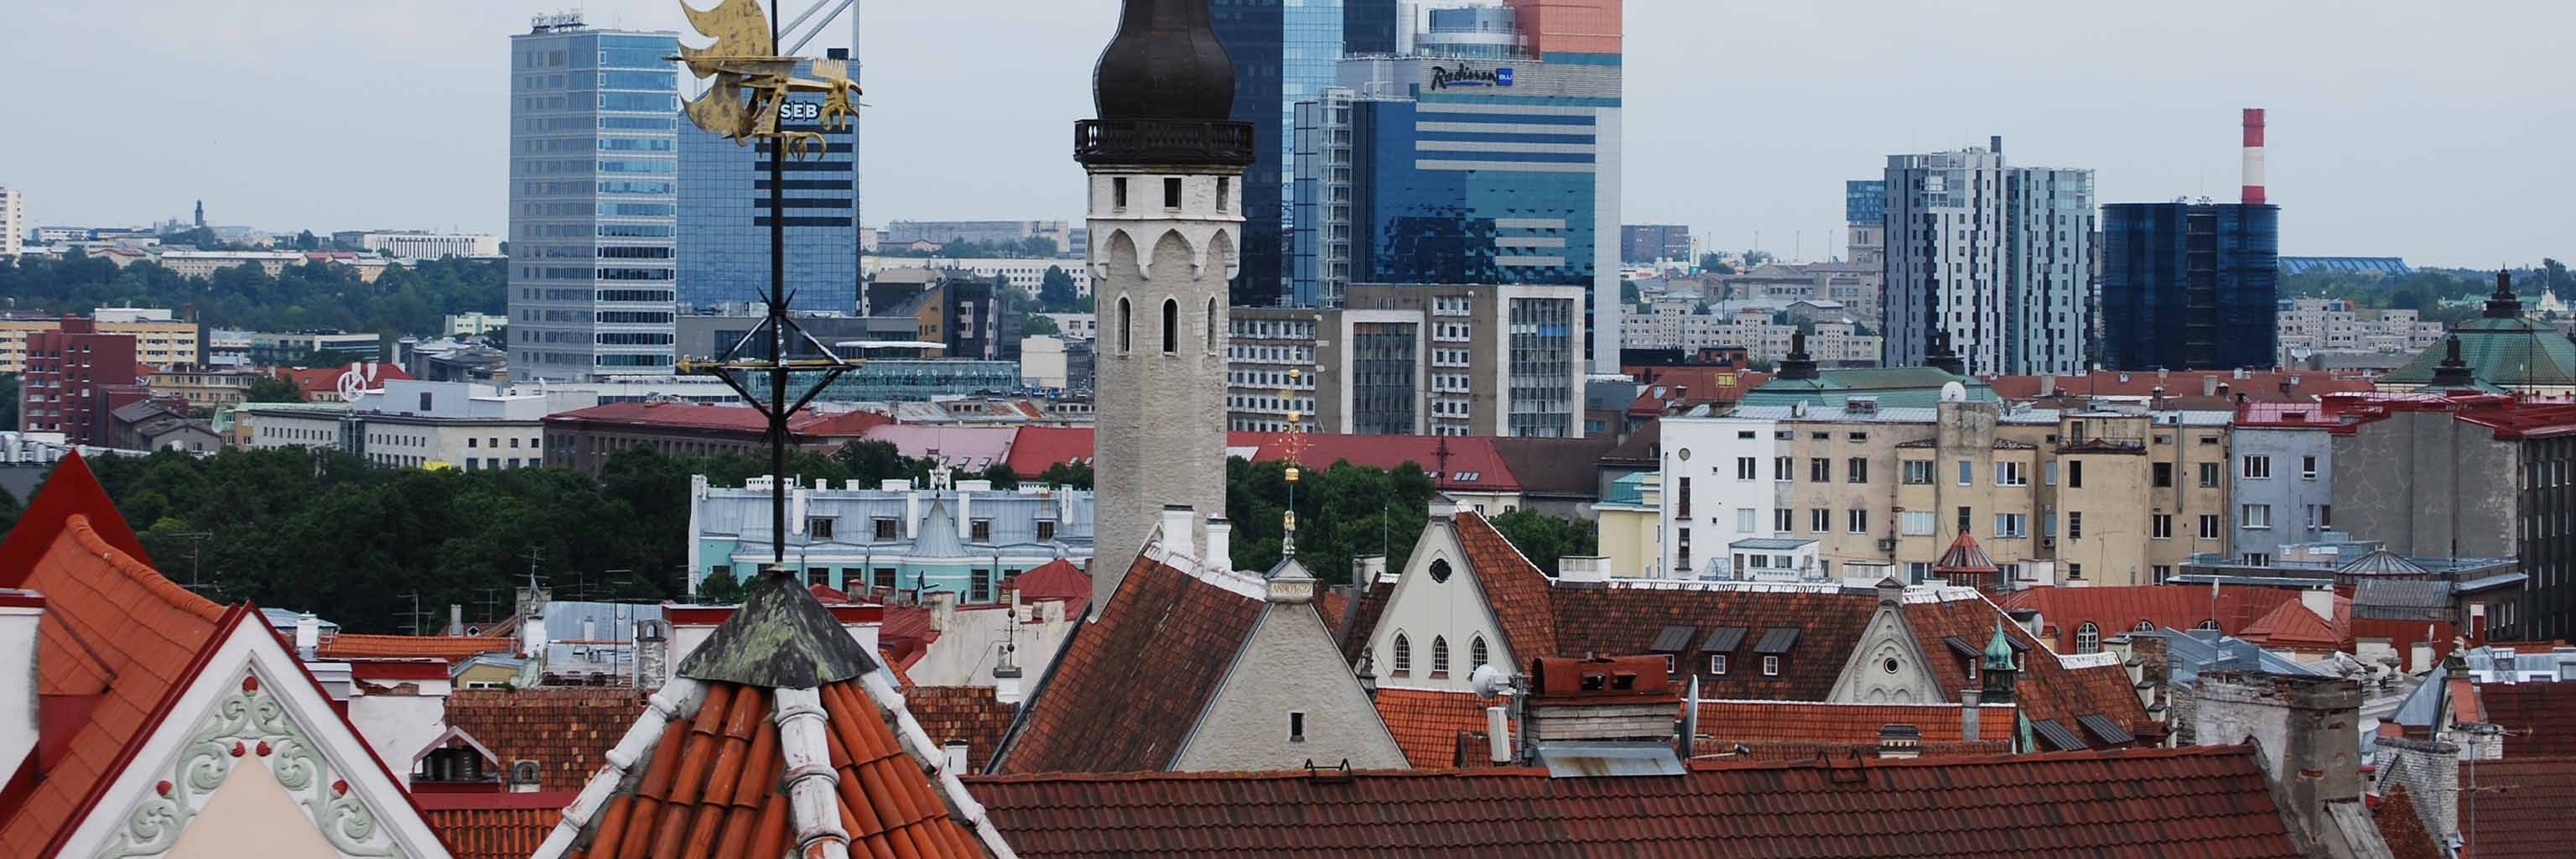 Downtown Tallinn, Estonia